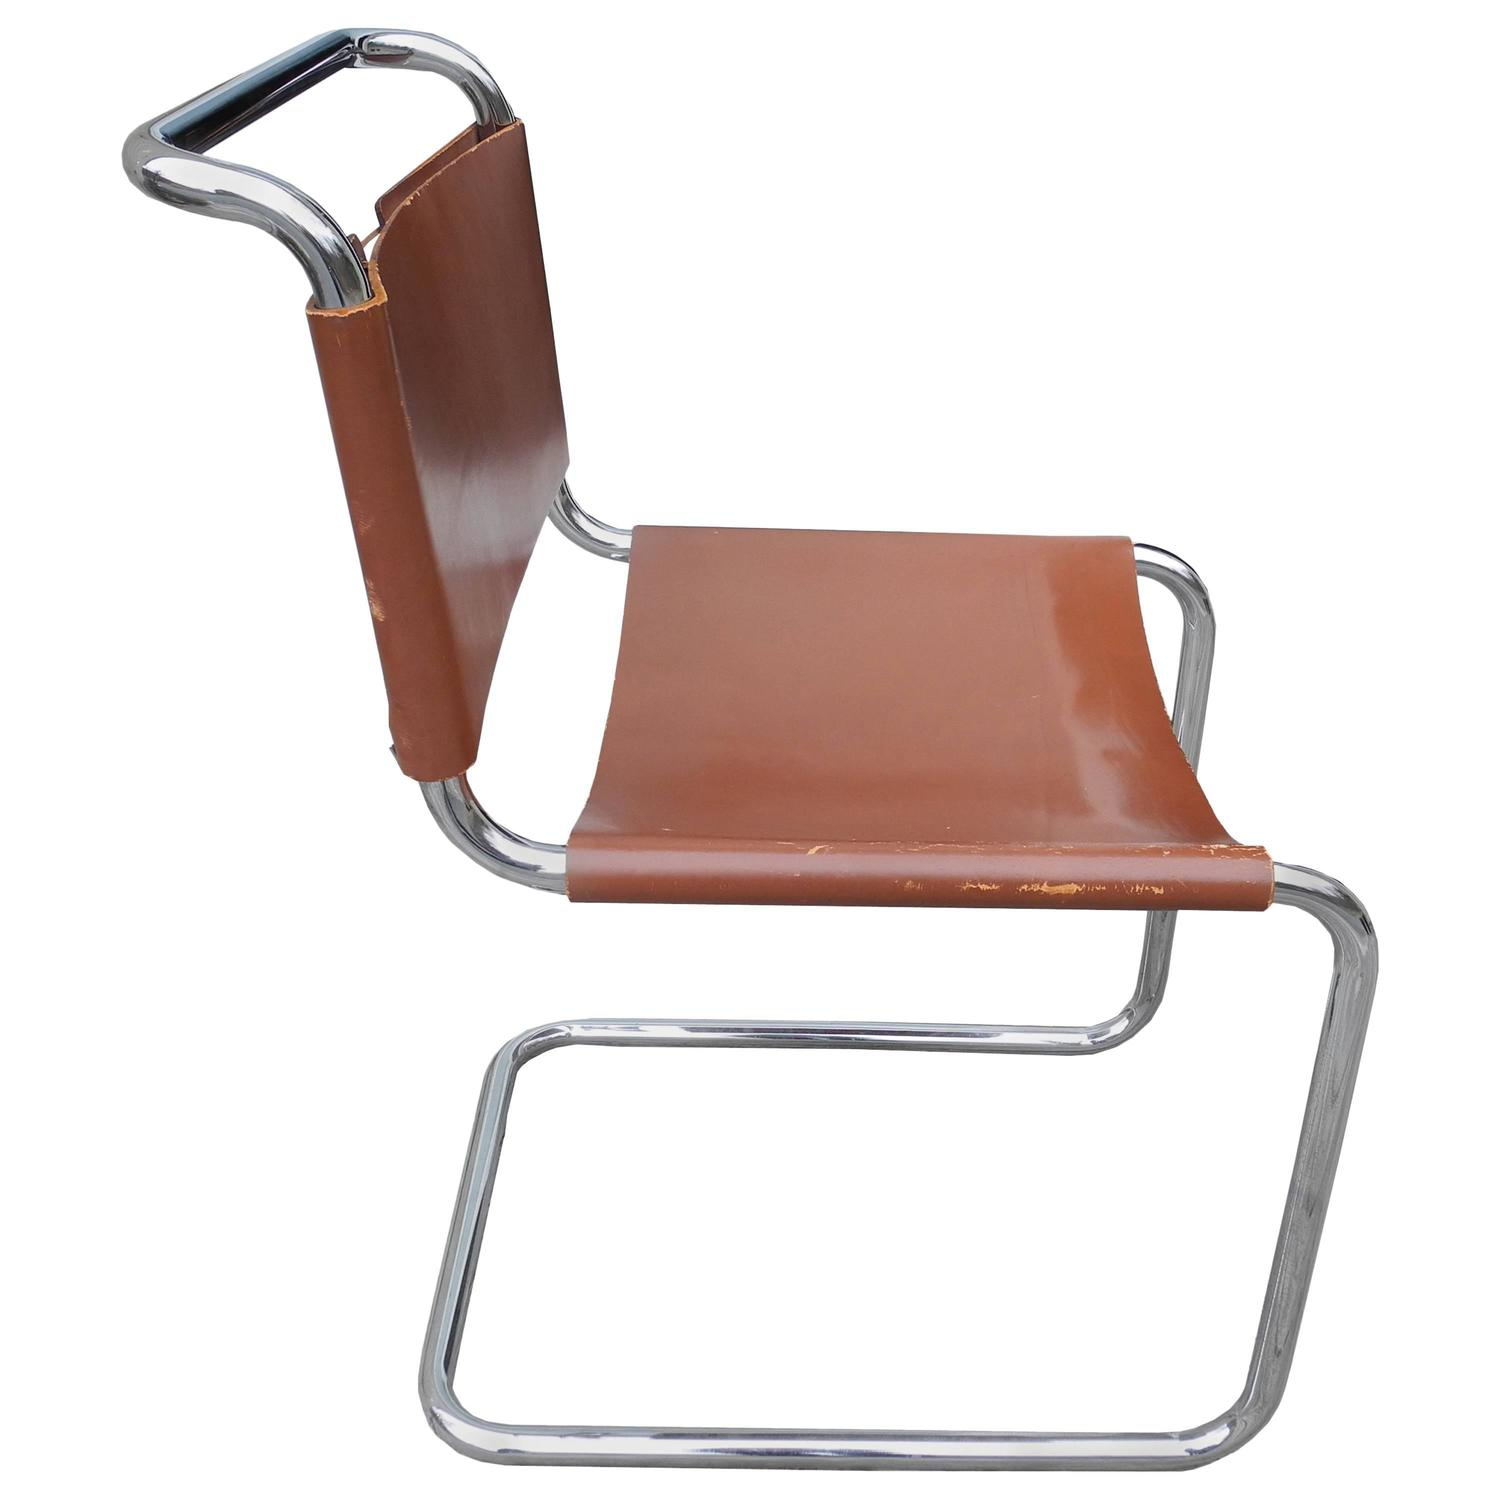 Bauhaus Design Cantilevered Tubular Metal and Saddle Leather Chair